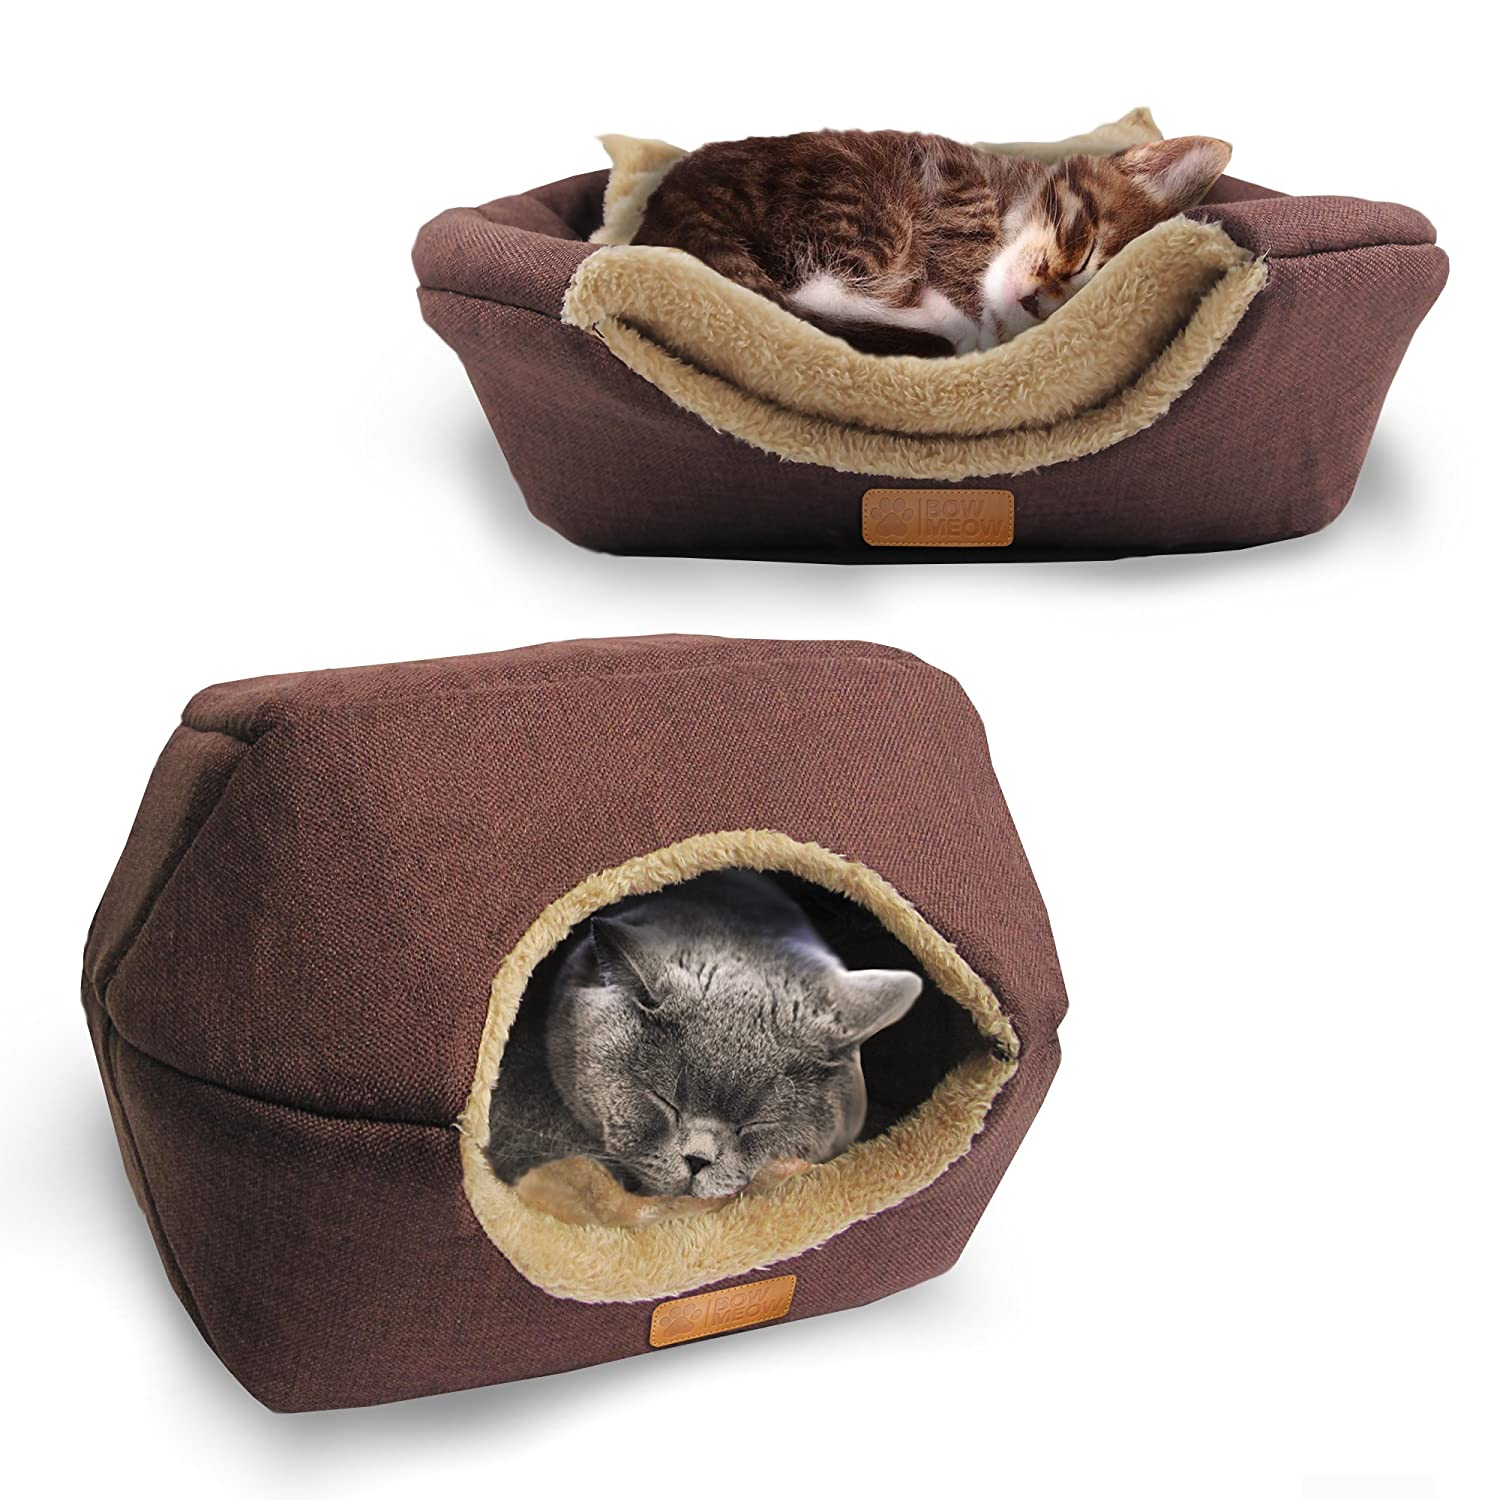 Brown Cotton 18\ Brown Cotton 18\ Bow Meow Premium Pet Bed Cave, Cat Bed and Cave, Small Dog Bed, 2-in-1 Foldable Pet Bed with Thick Organic Cotton, Soft, Warm, Washable pet Bed with a Pillow.